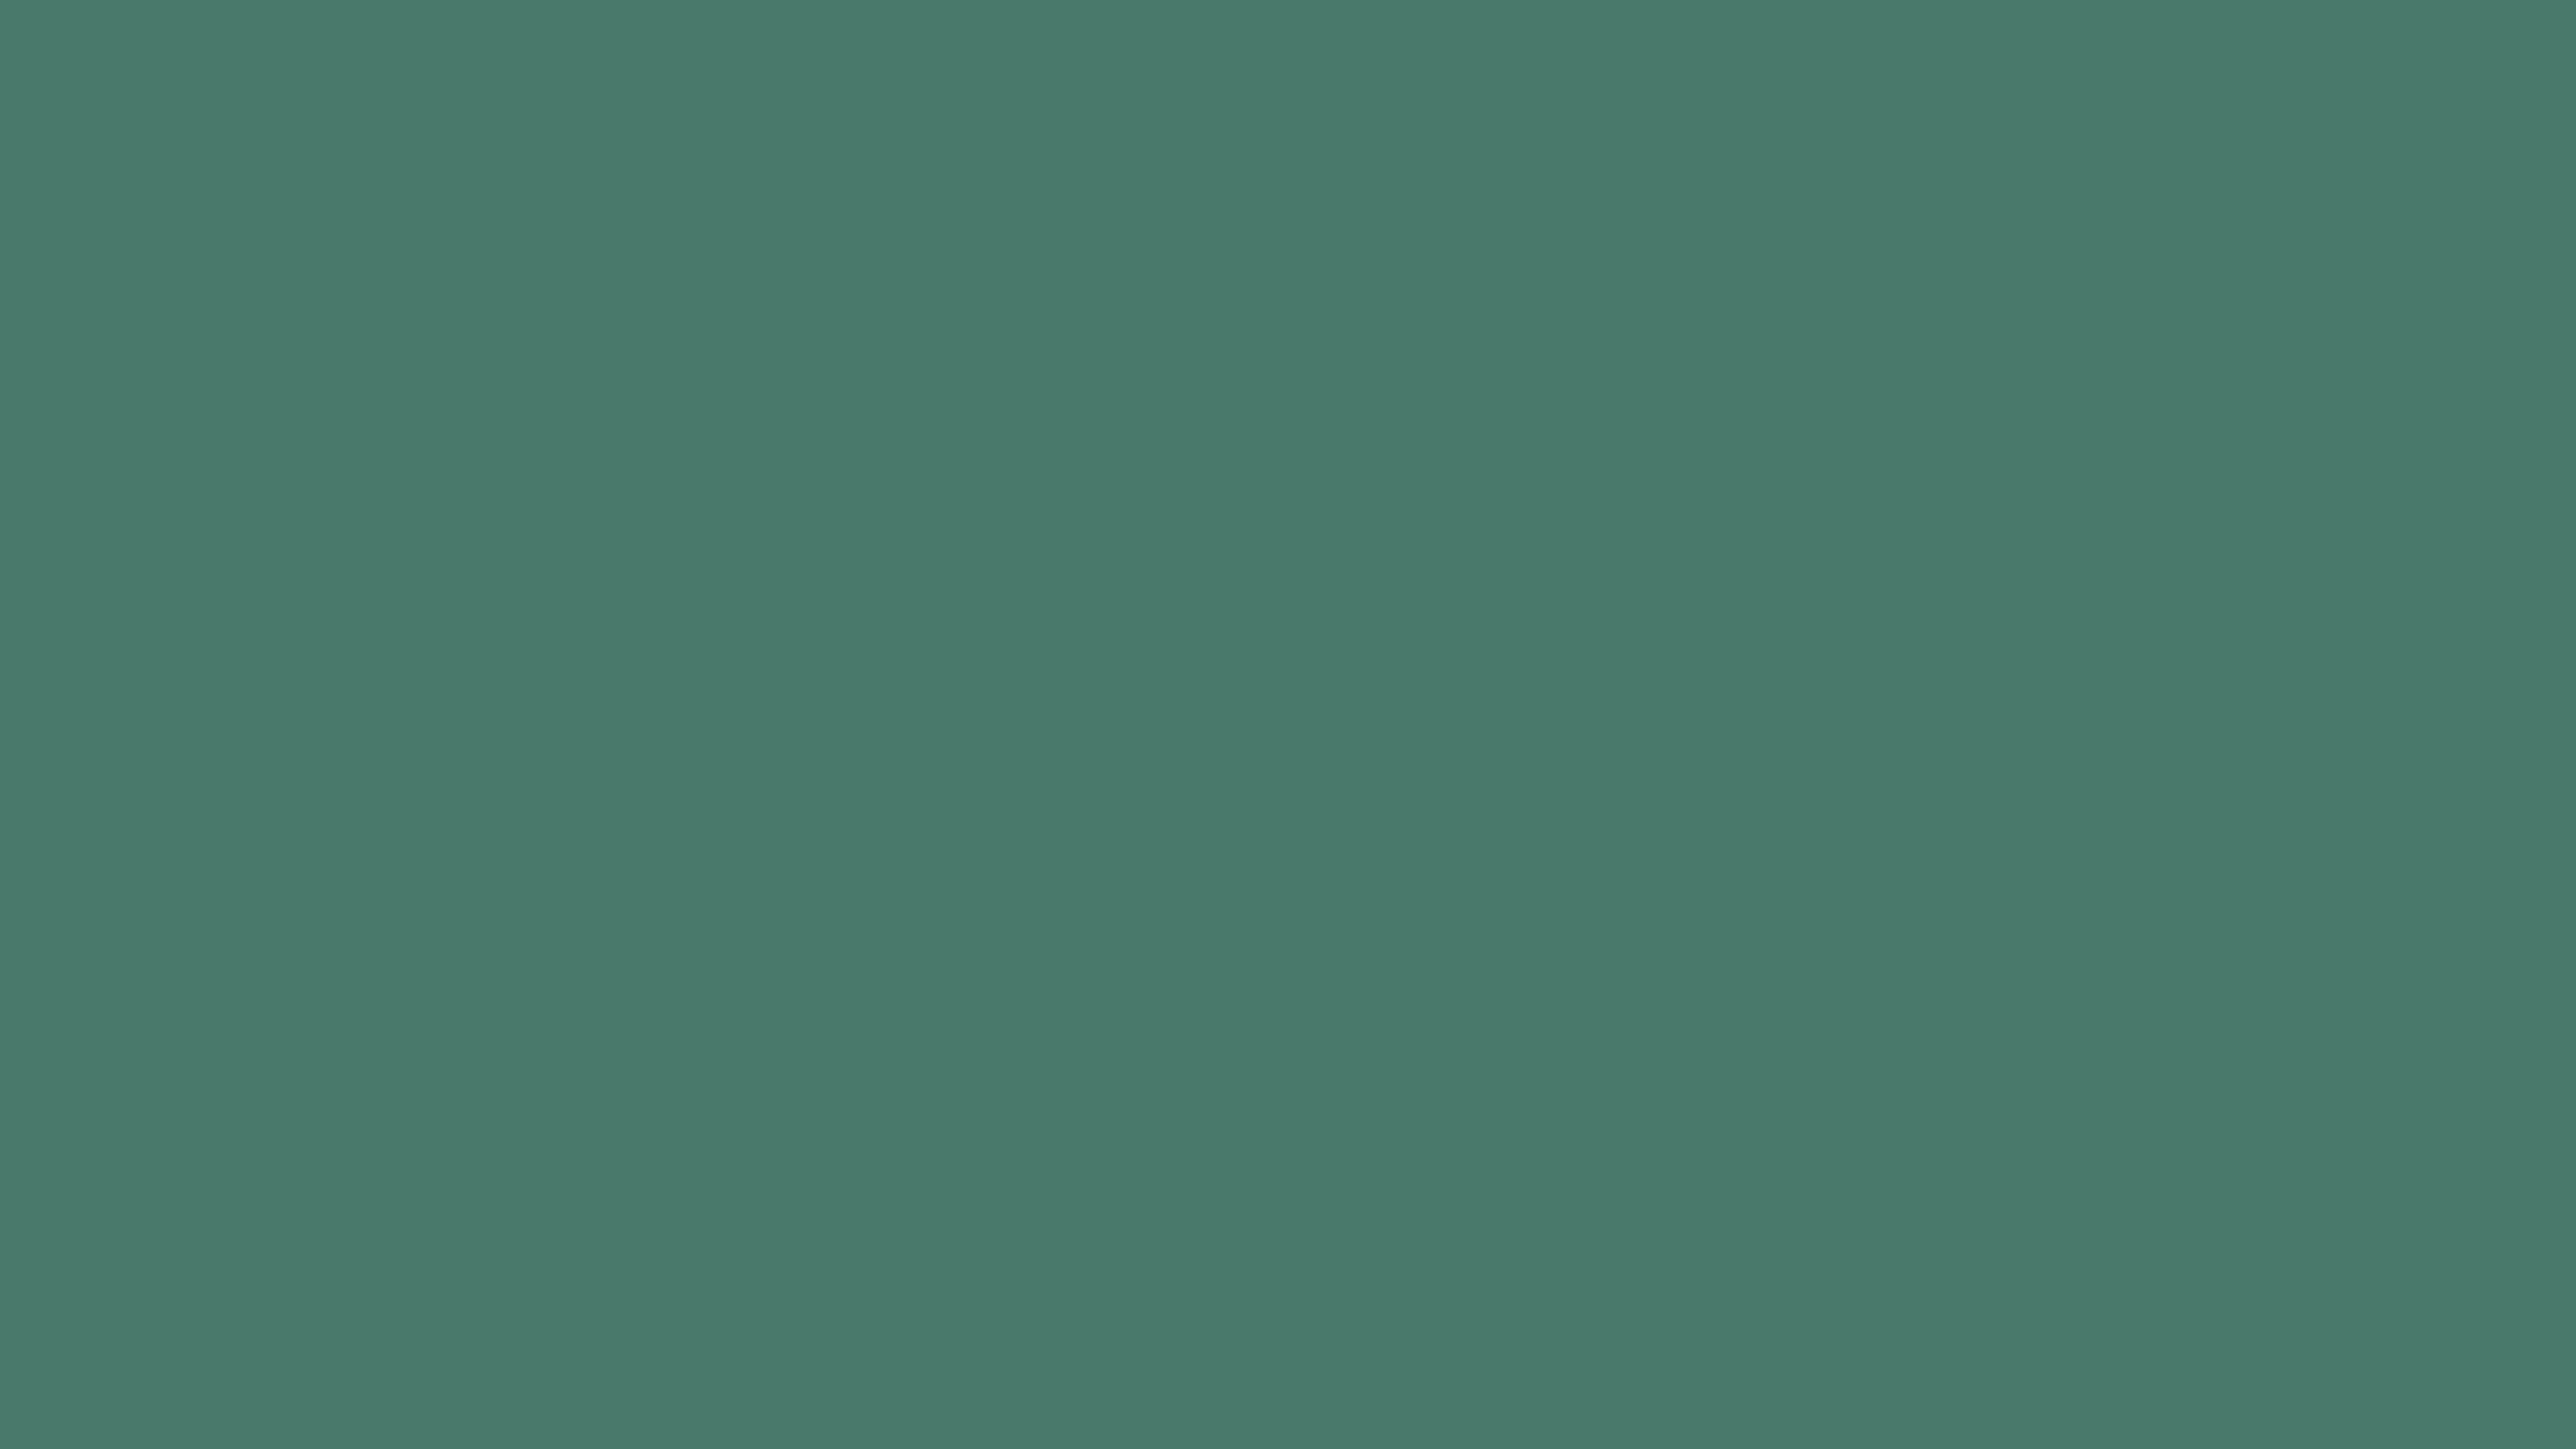 5120x2880 Hookers Green Solid Color Background